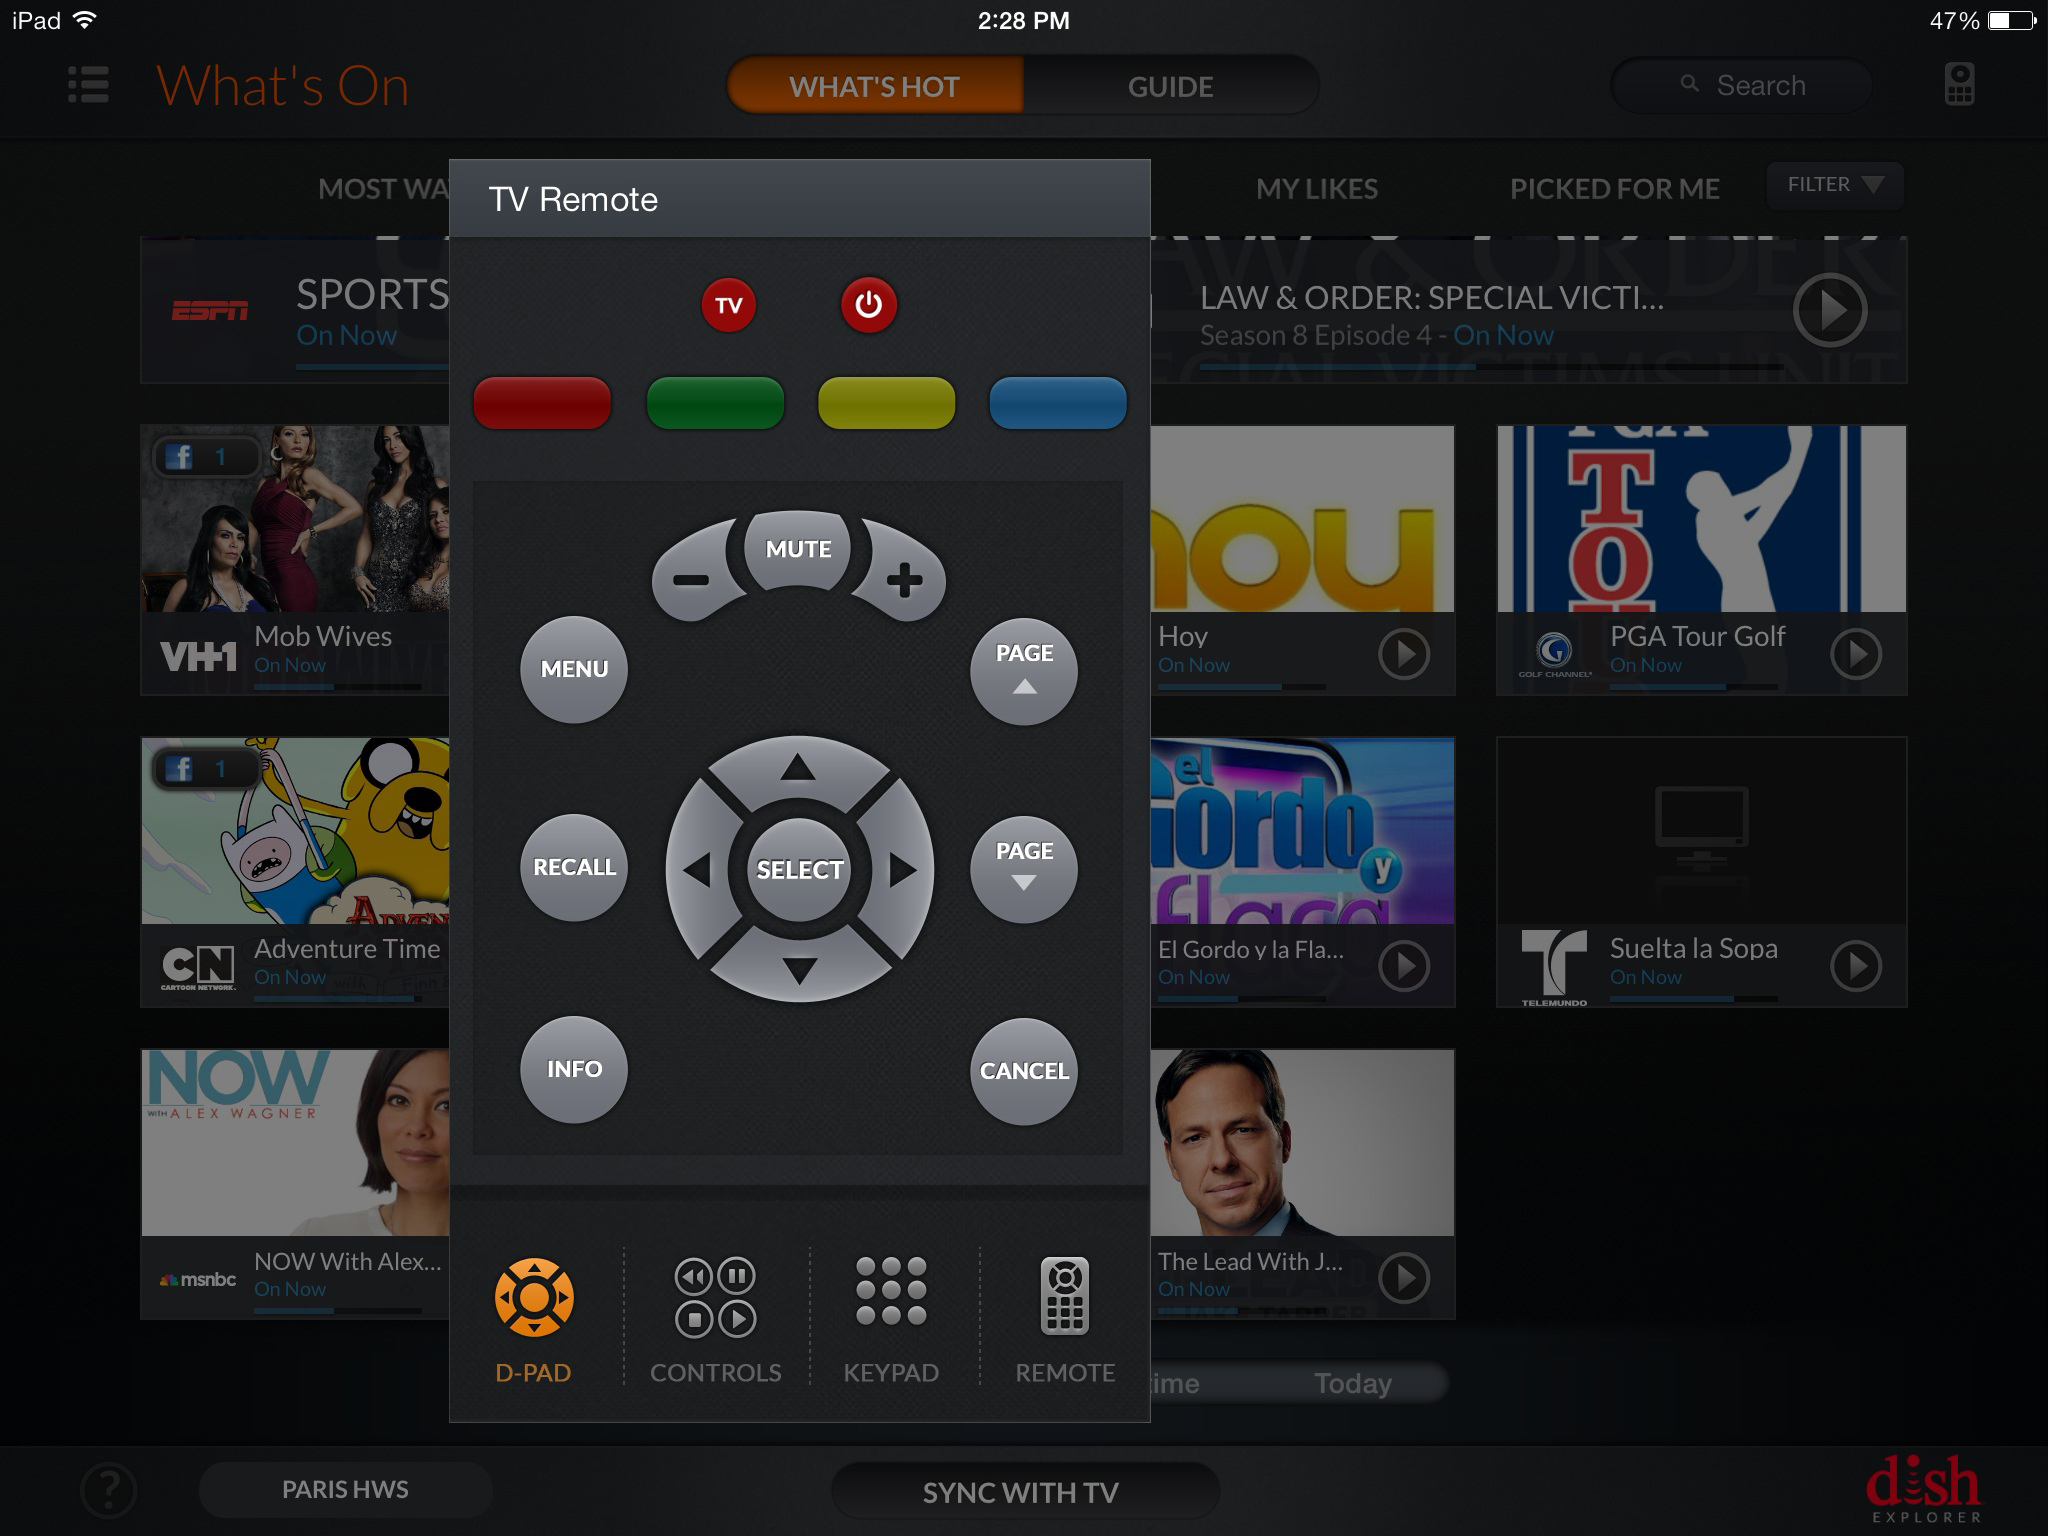 DISH Enhances TV Control with Updates to DISH Explorer App